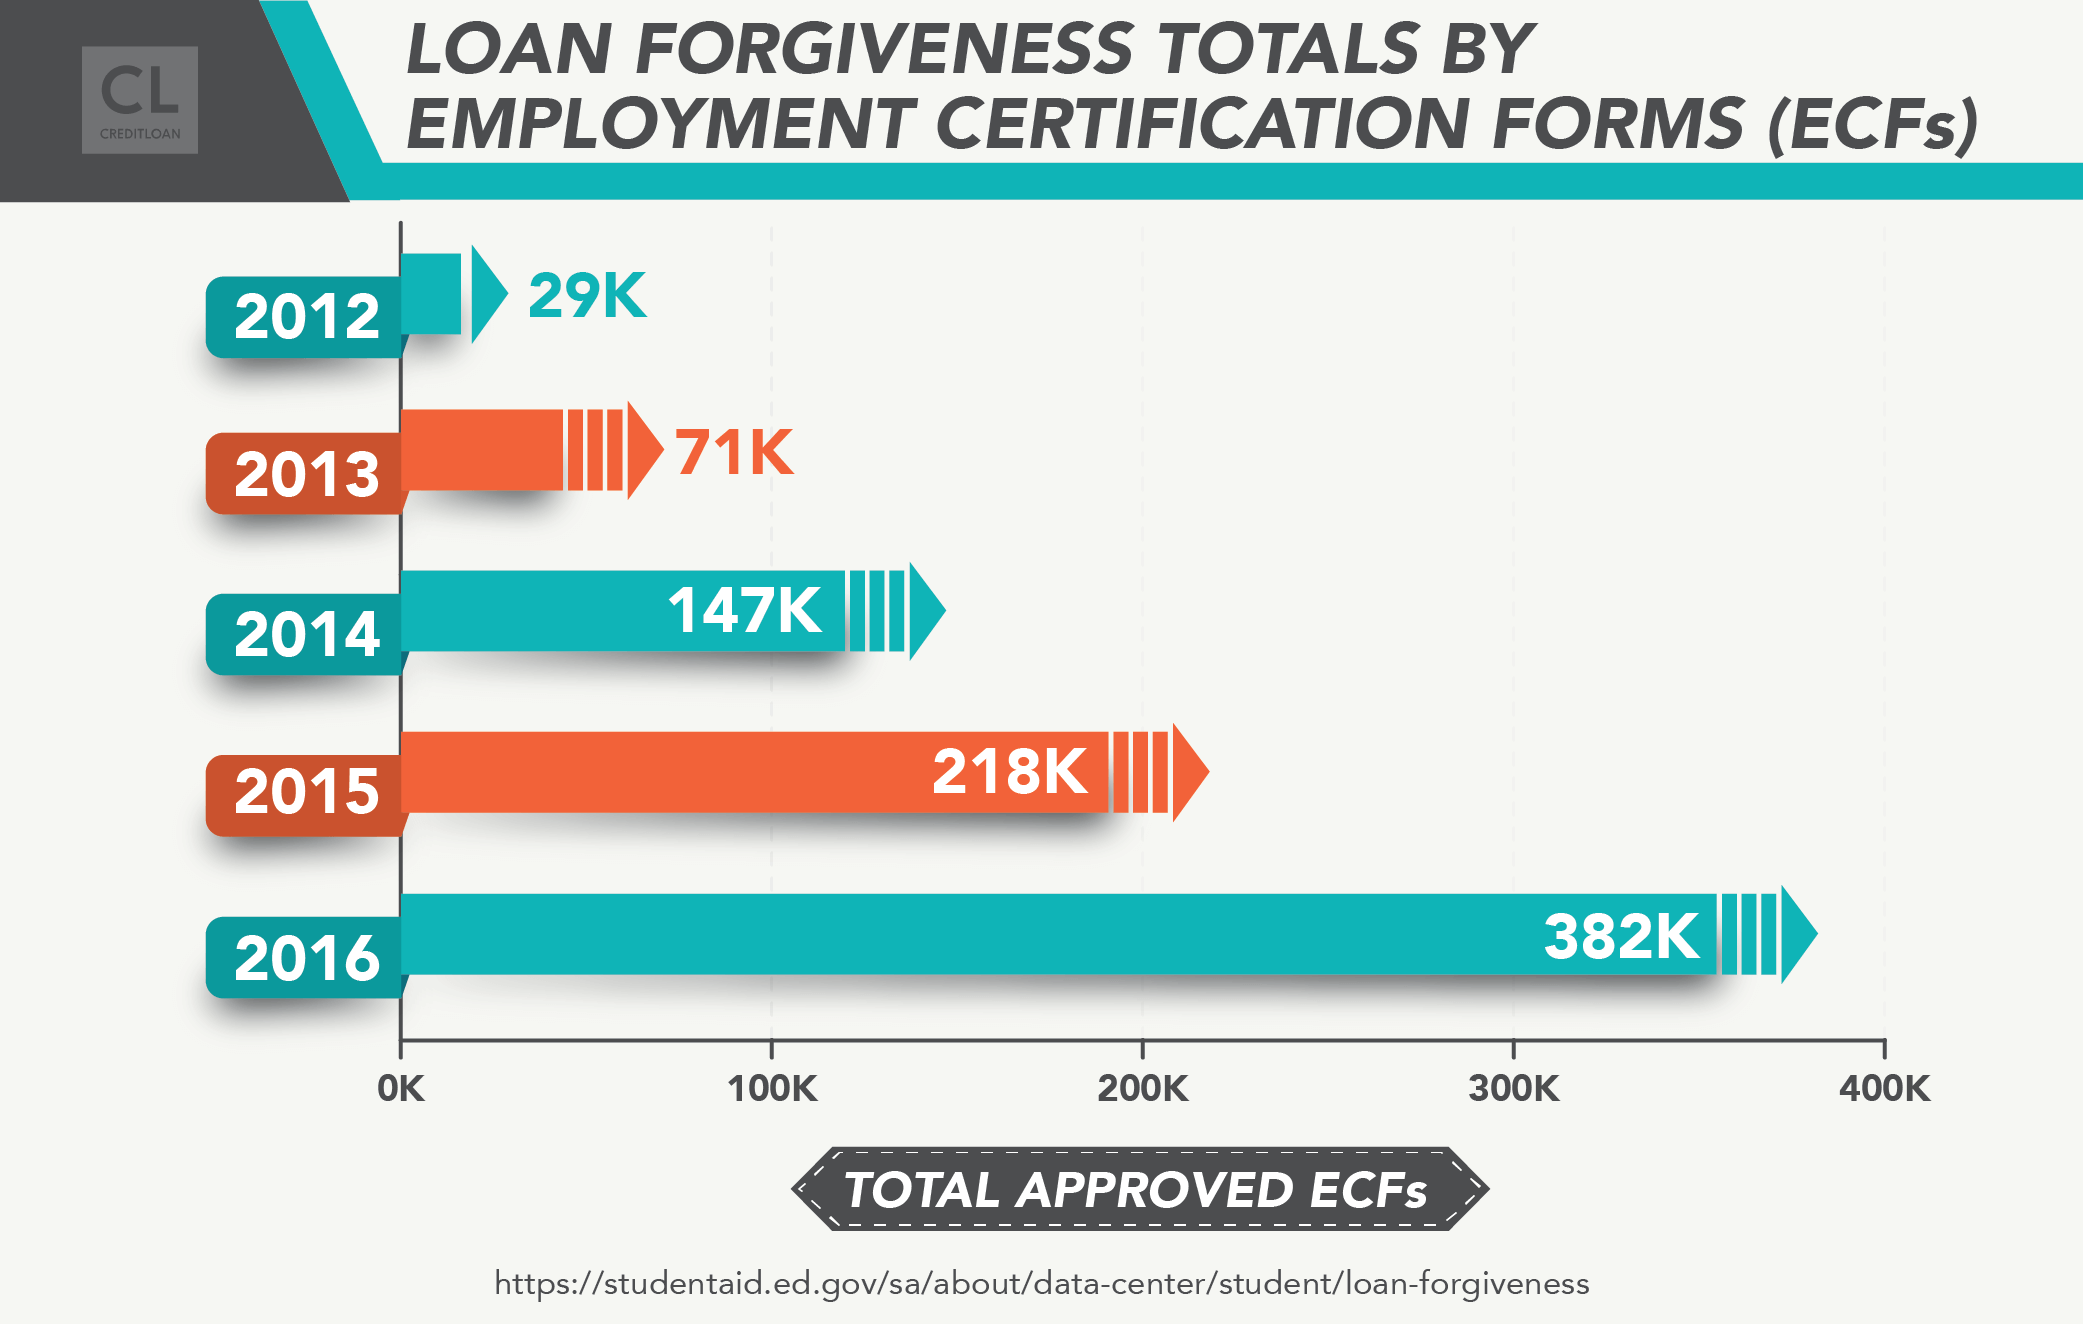 Loan Forgiveness Totals by Employment Certification Forms (ECFs) from 2012-2016